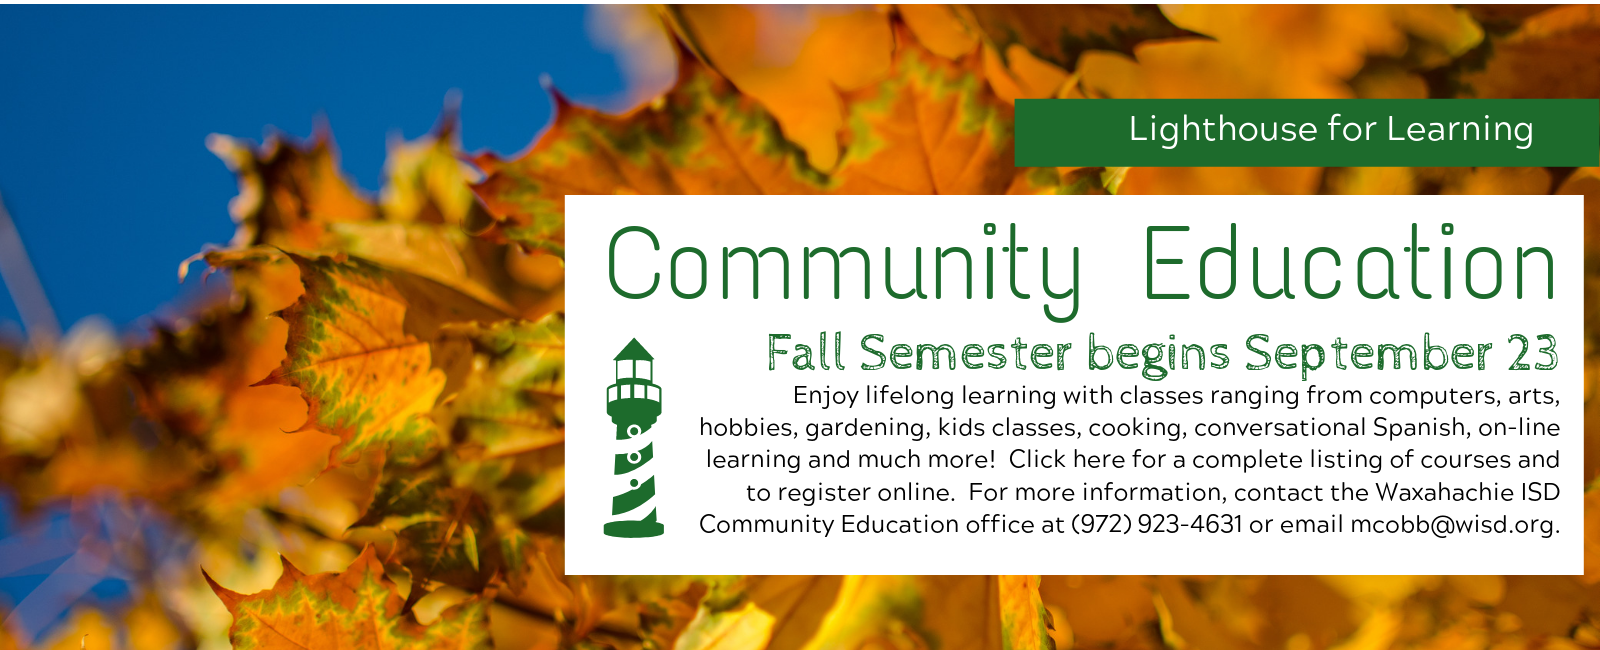 Lighthouse for Learning Fall/Holiday Semester